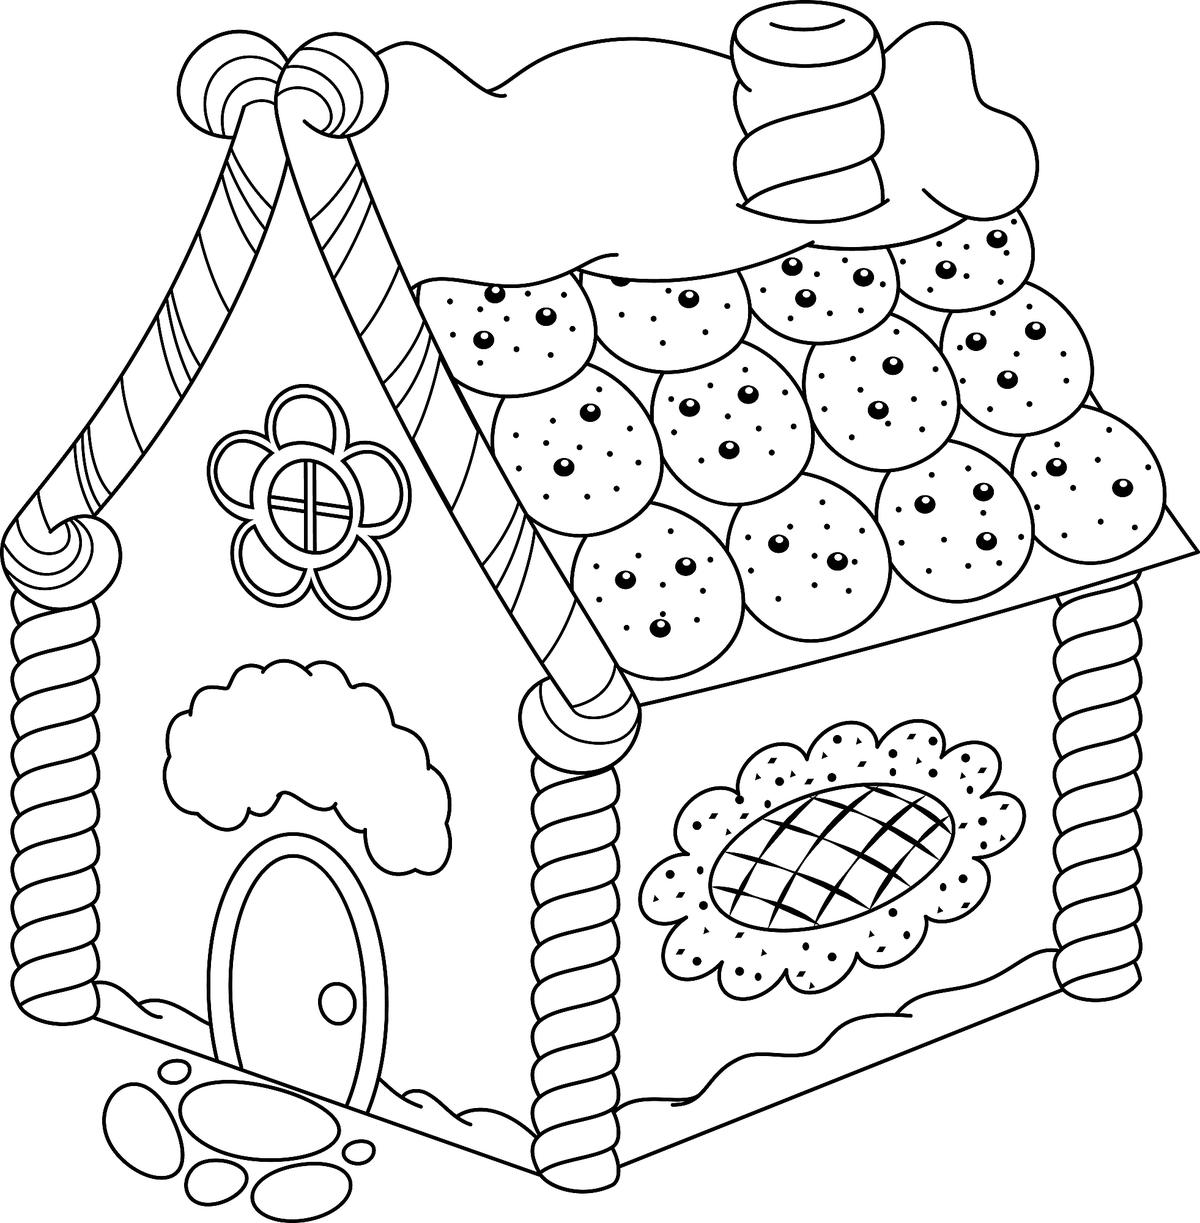 Who doesnt love a gingerbread house print out these fun gingerbread house coloring pages activities and games to play with your kids